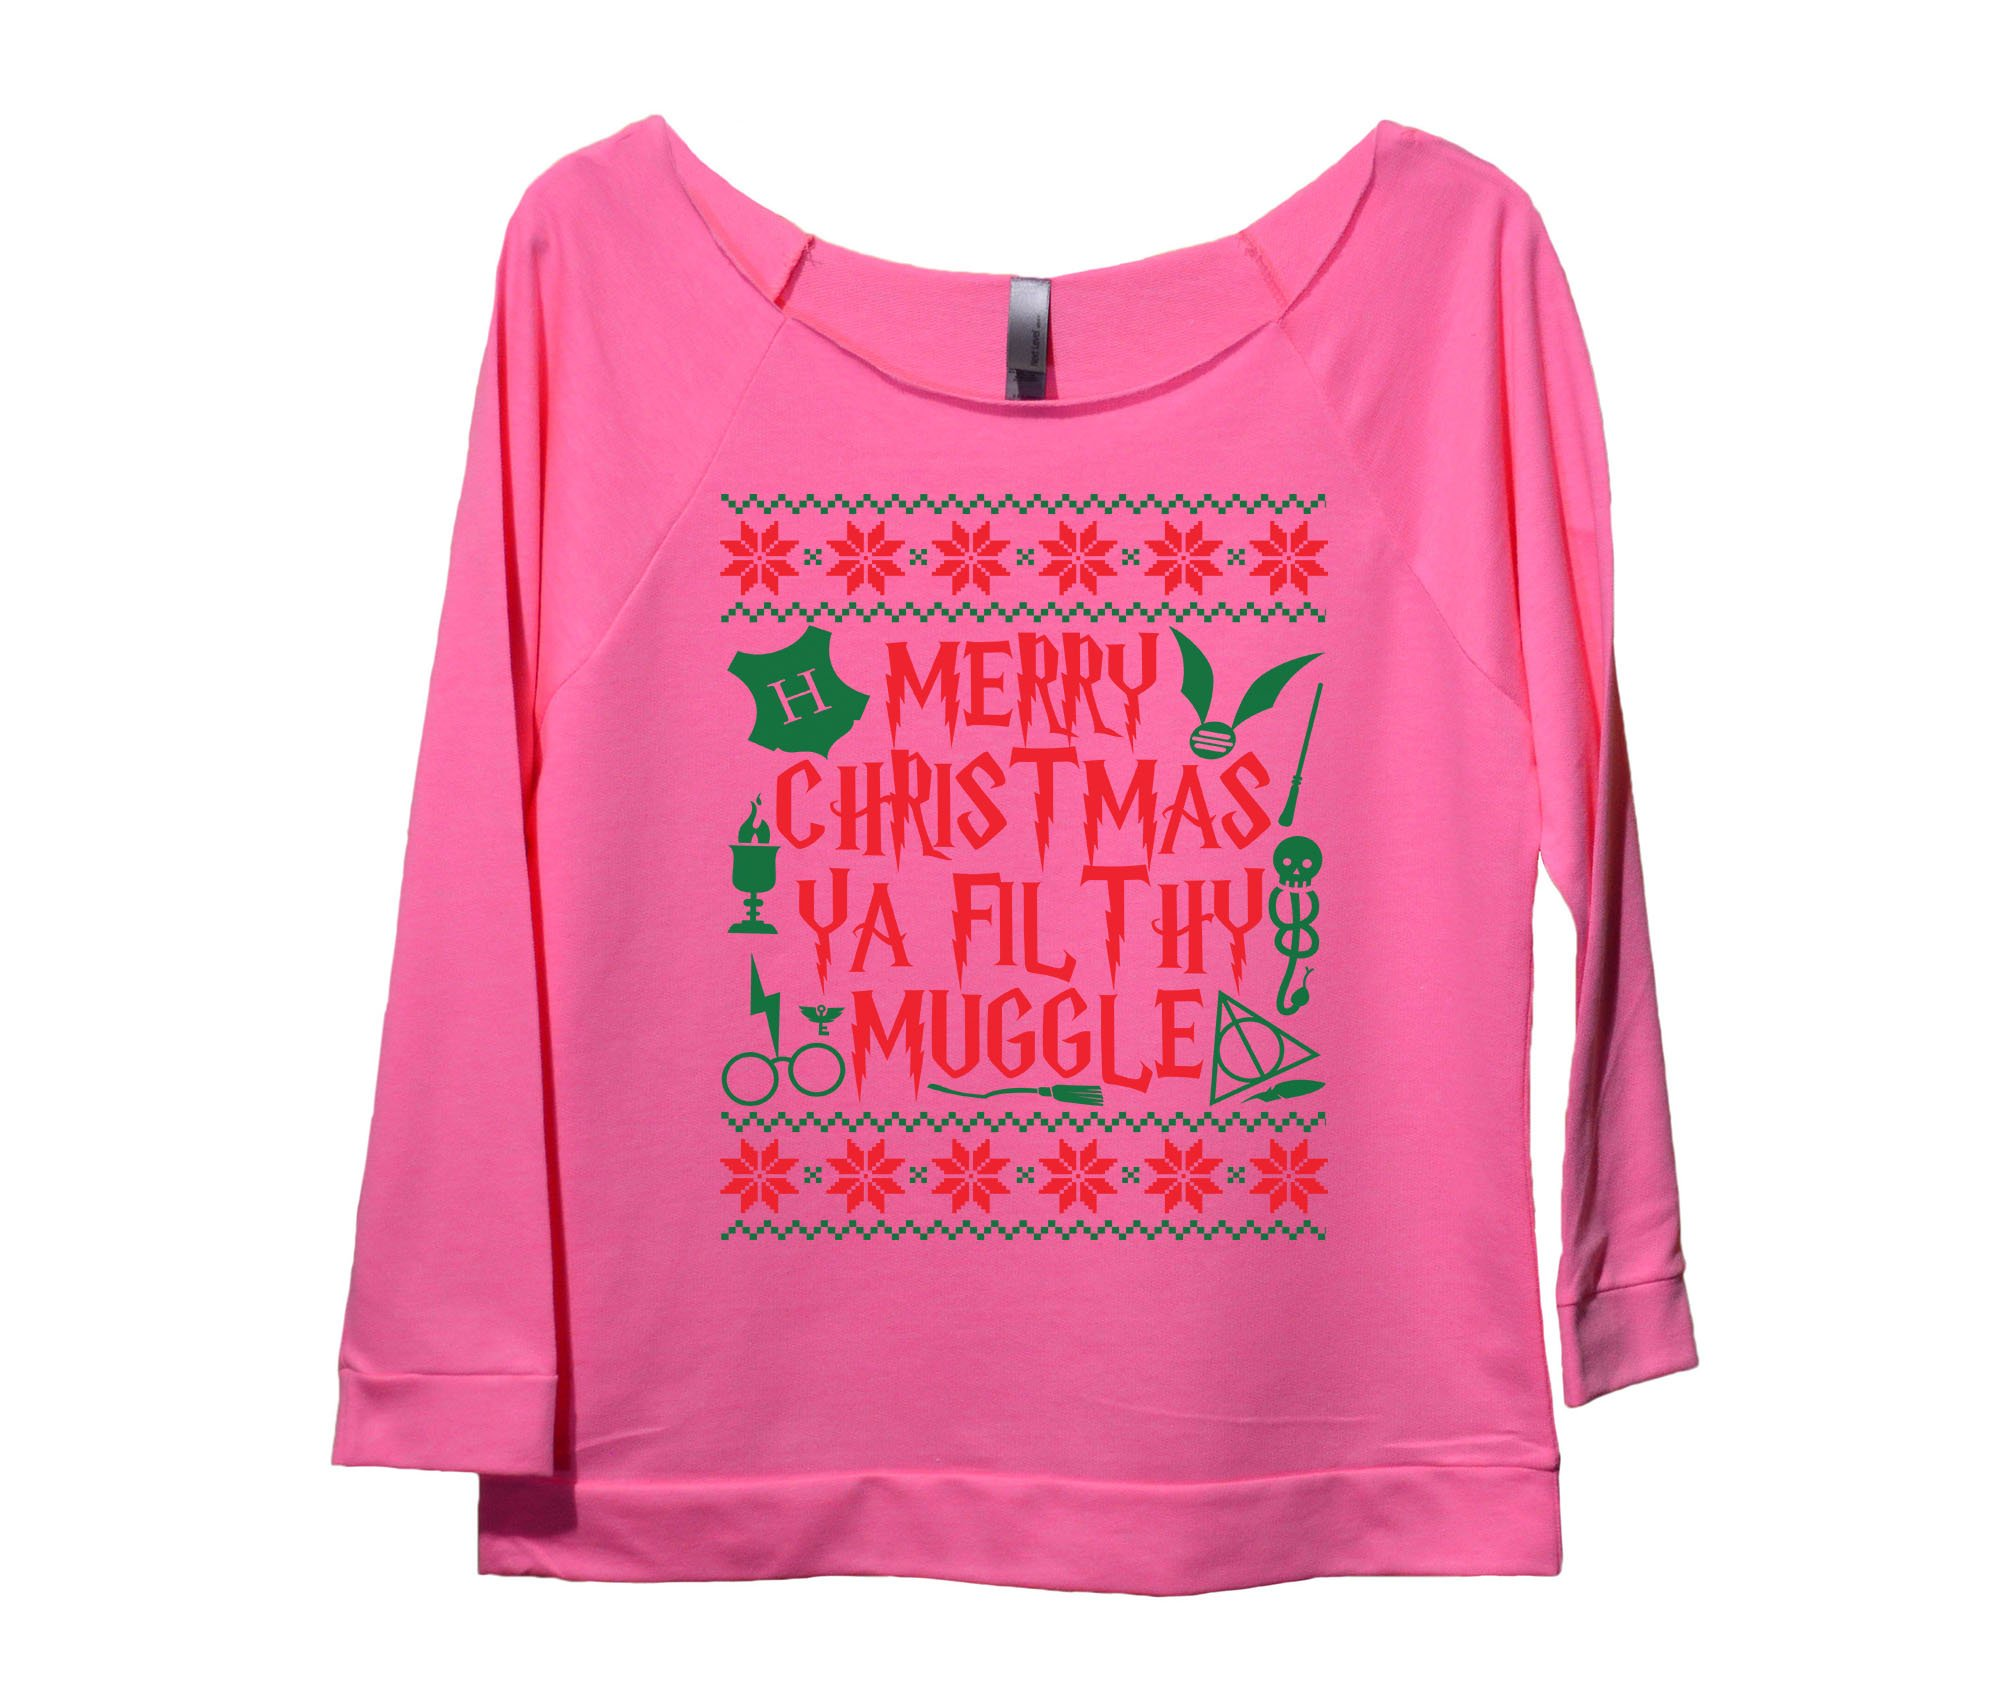 womens raw edge harry potter christmas sweat shirt 34 sleeve merry christmas ya filthy muggle funny threadz medium pink